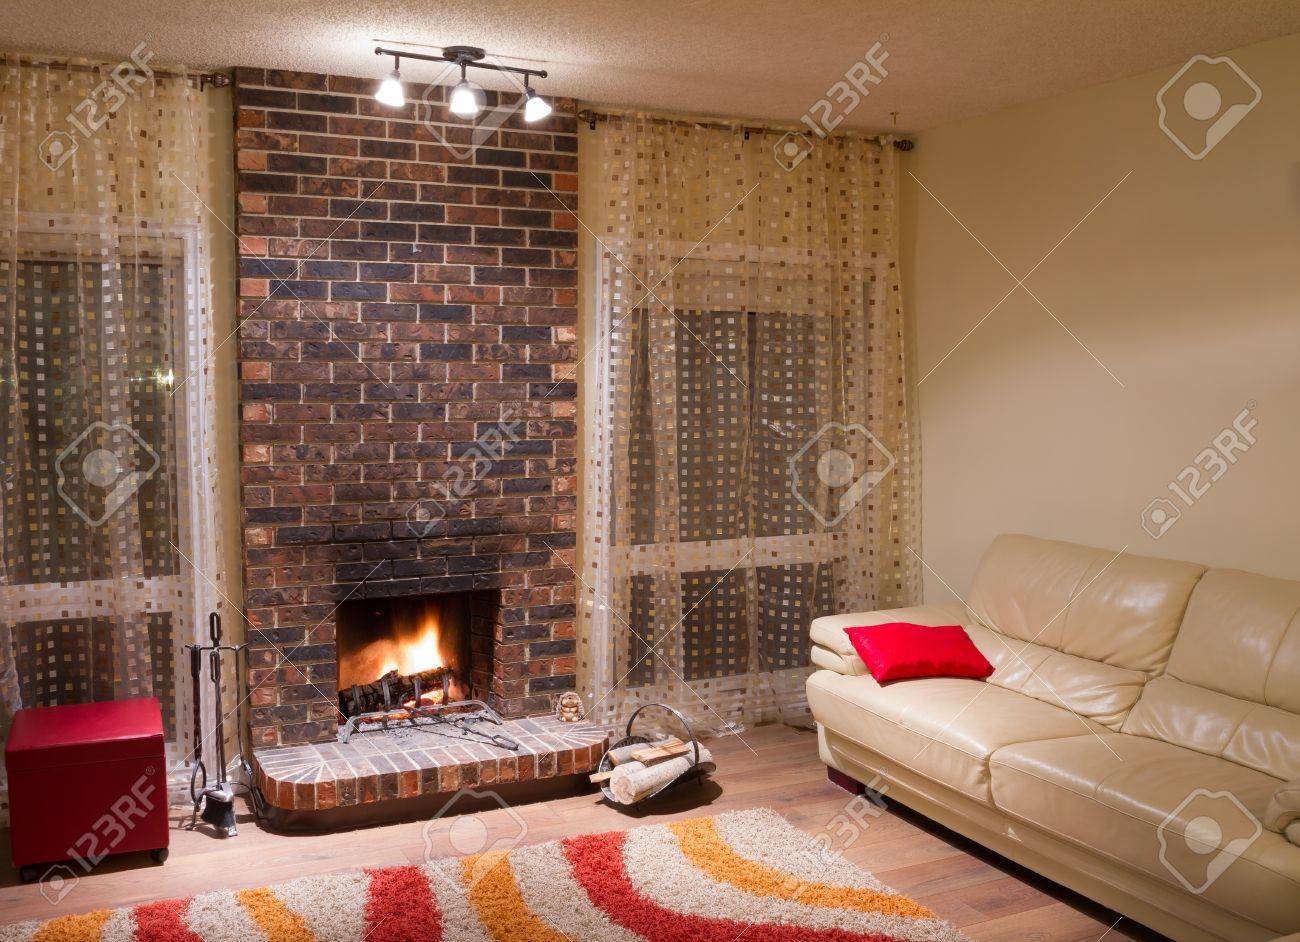 Interior design of living room in a new house with fireplace Stock Photo - 16126352